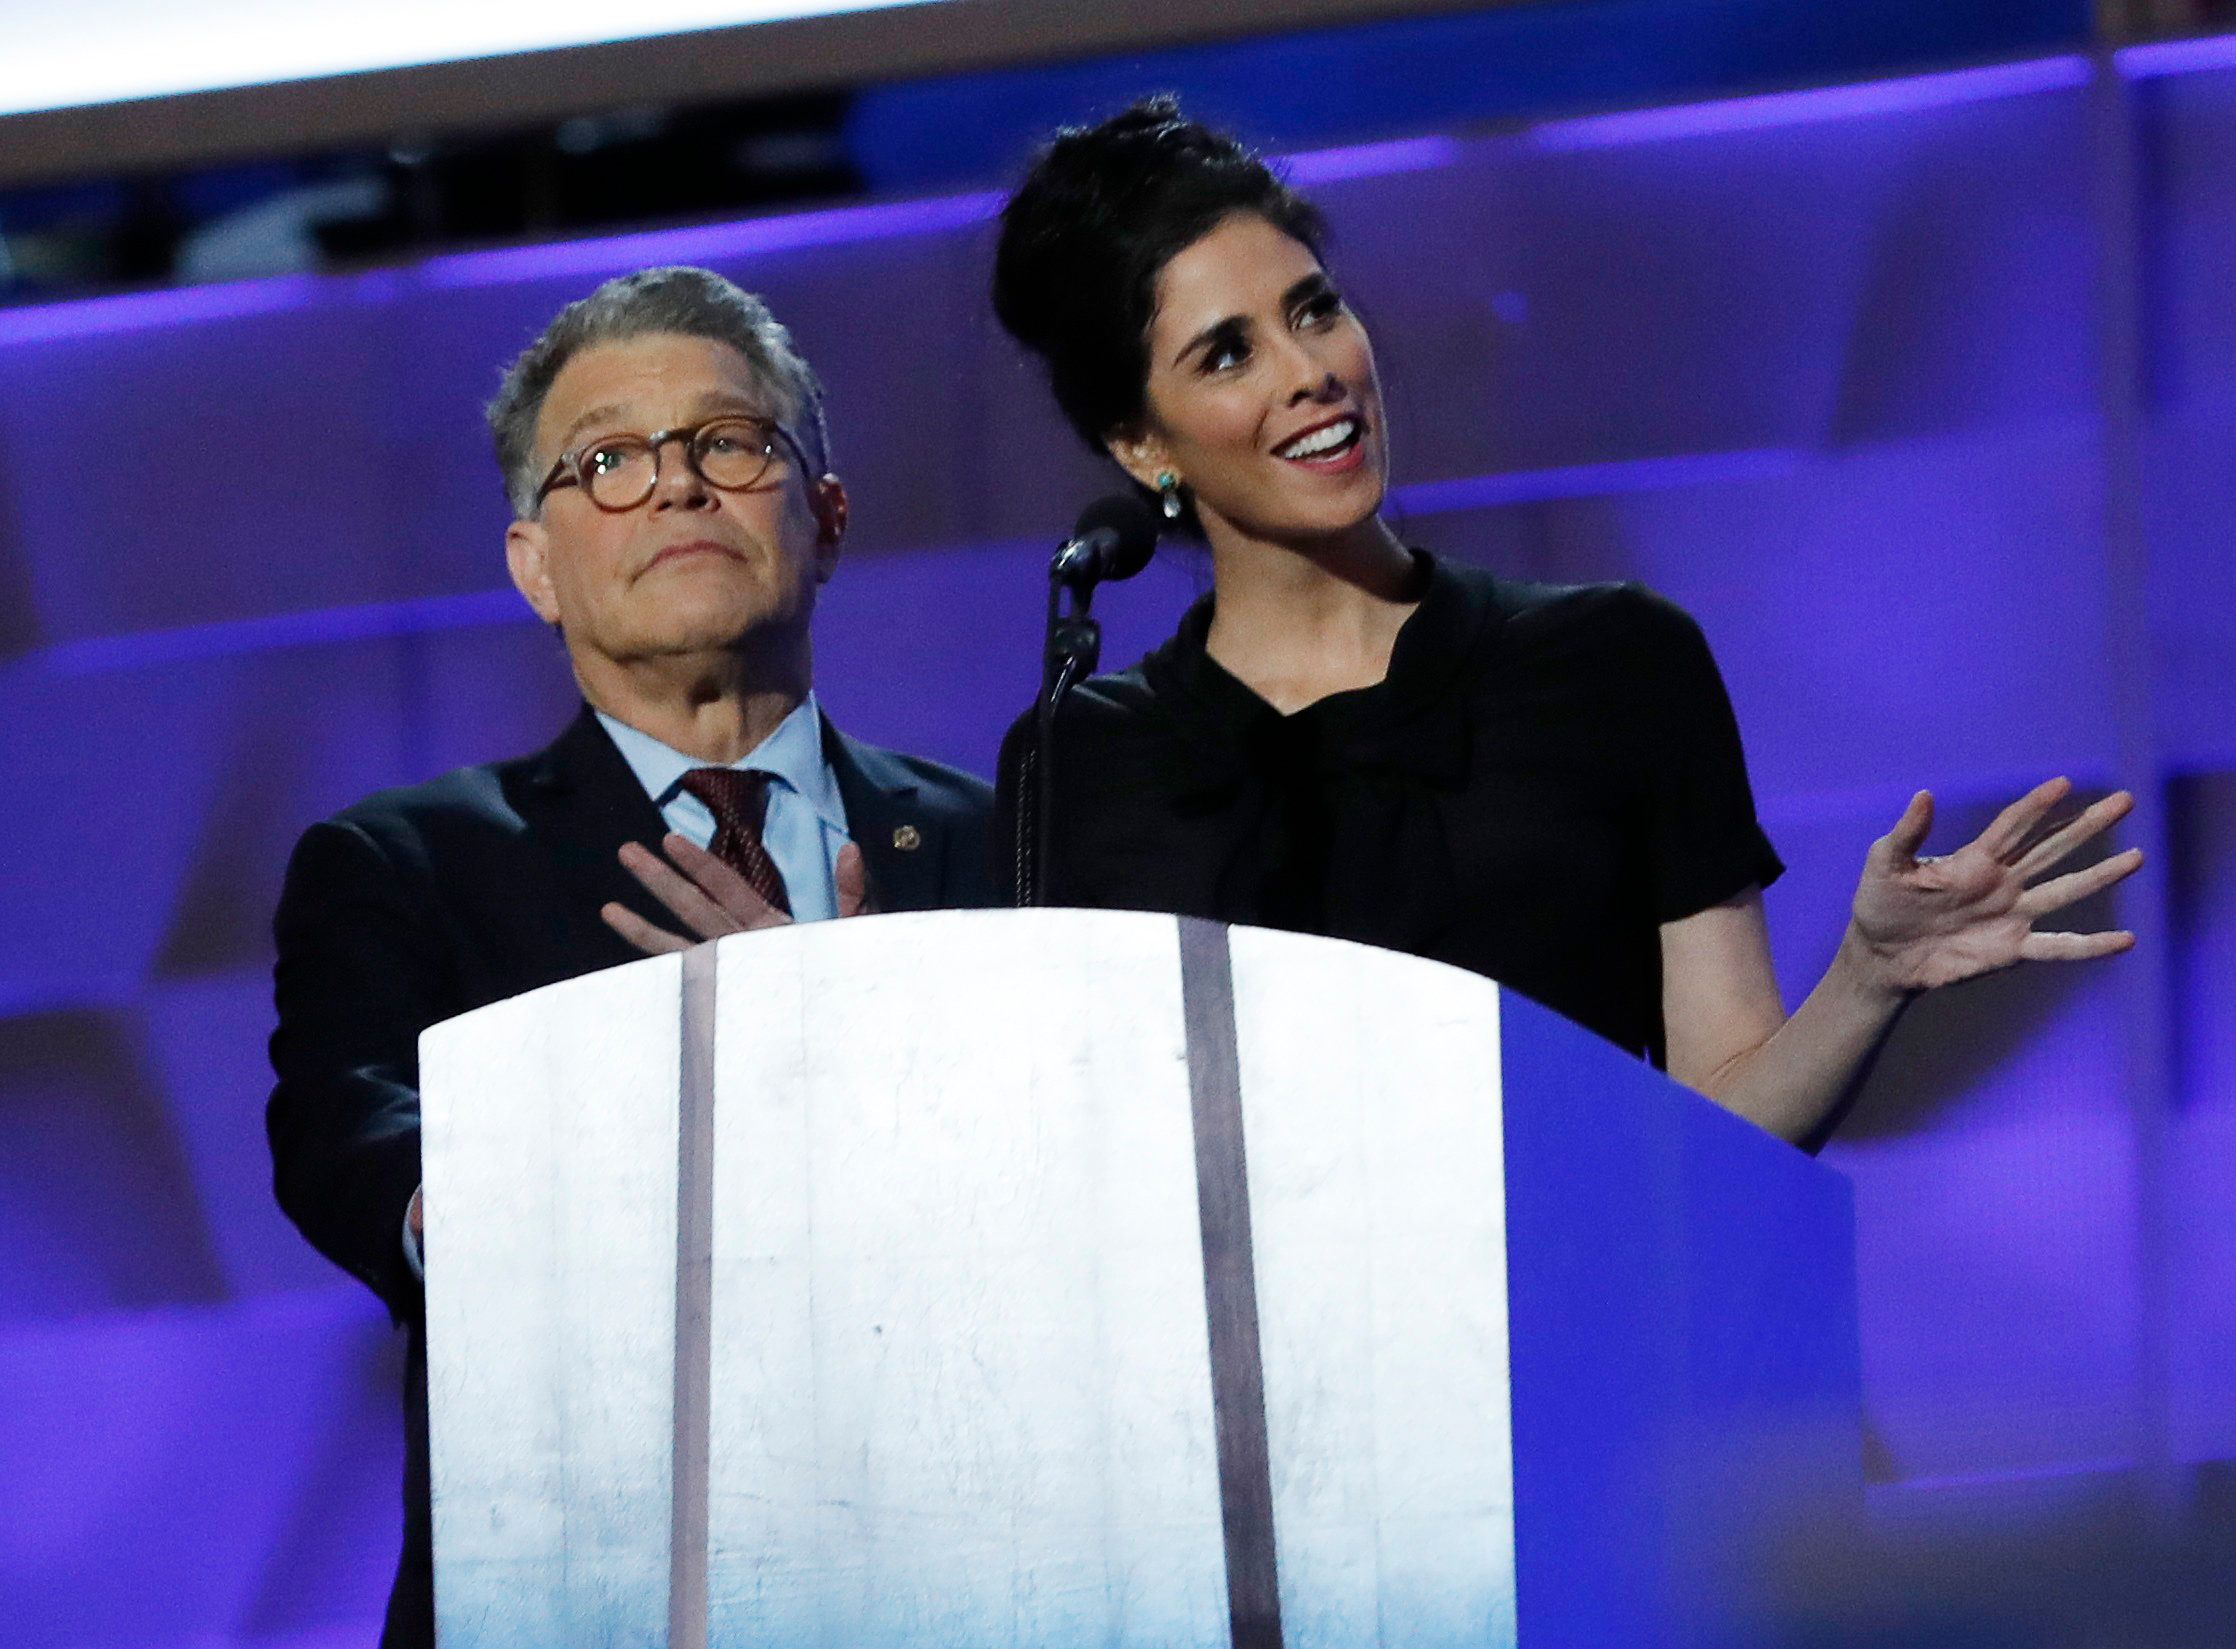 Sarah Silverman Forced To Lash Out At 'Ridiculous' Bernie Sanders